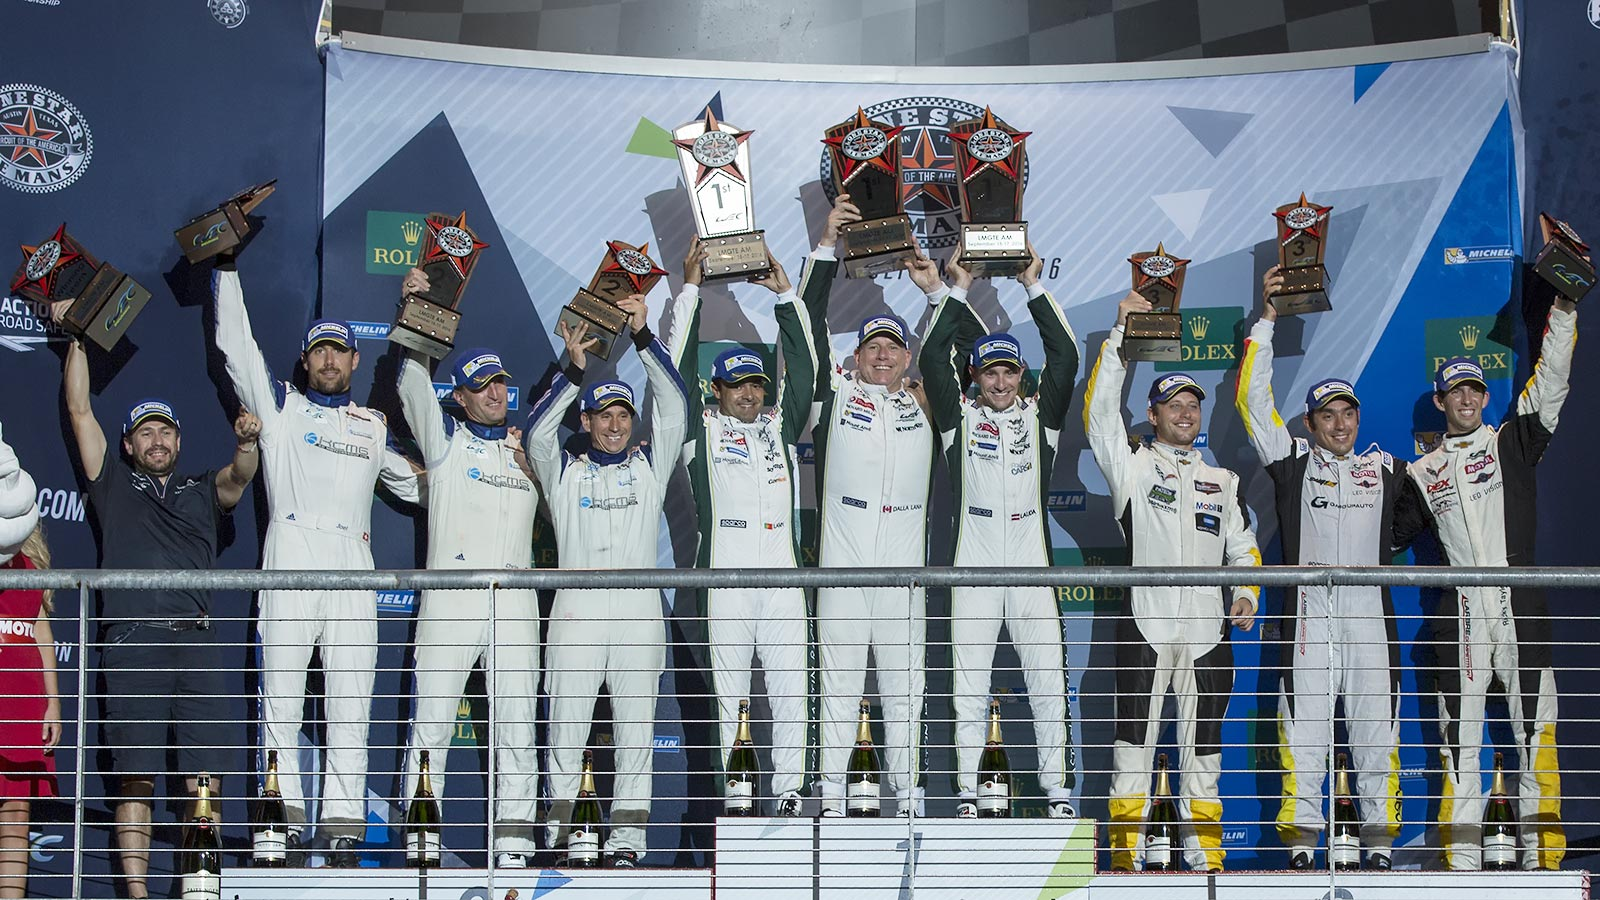 1st-placepodium-lmgte_am-car-98-aston-martin-vantage-v8-paul-dalla-lana-pedro-lamy-mathais-lauda